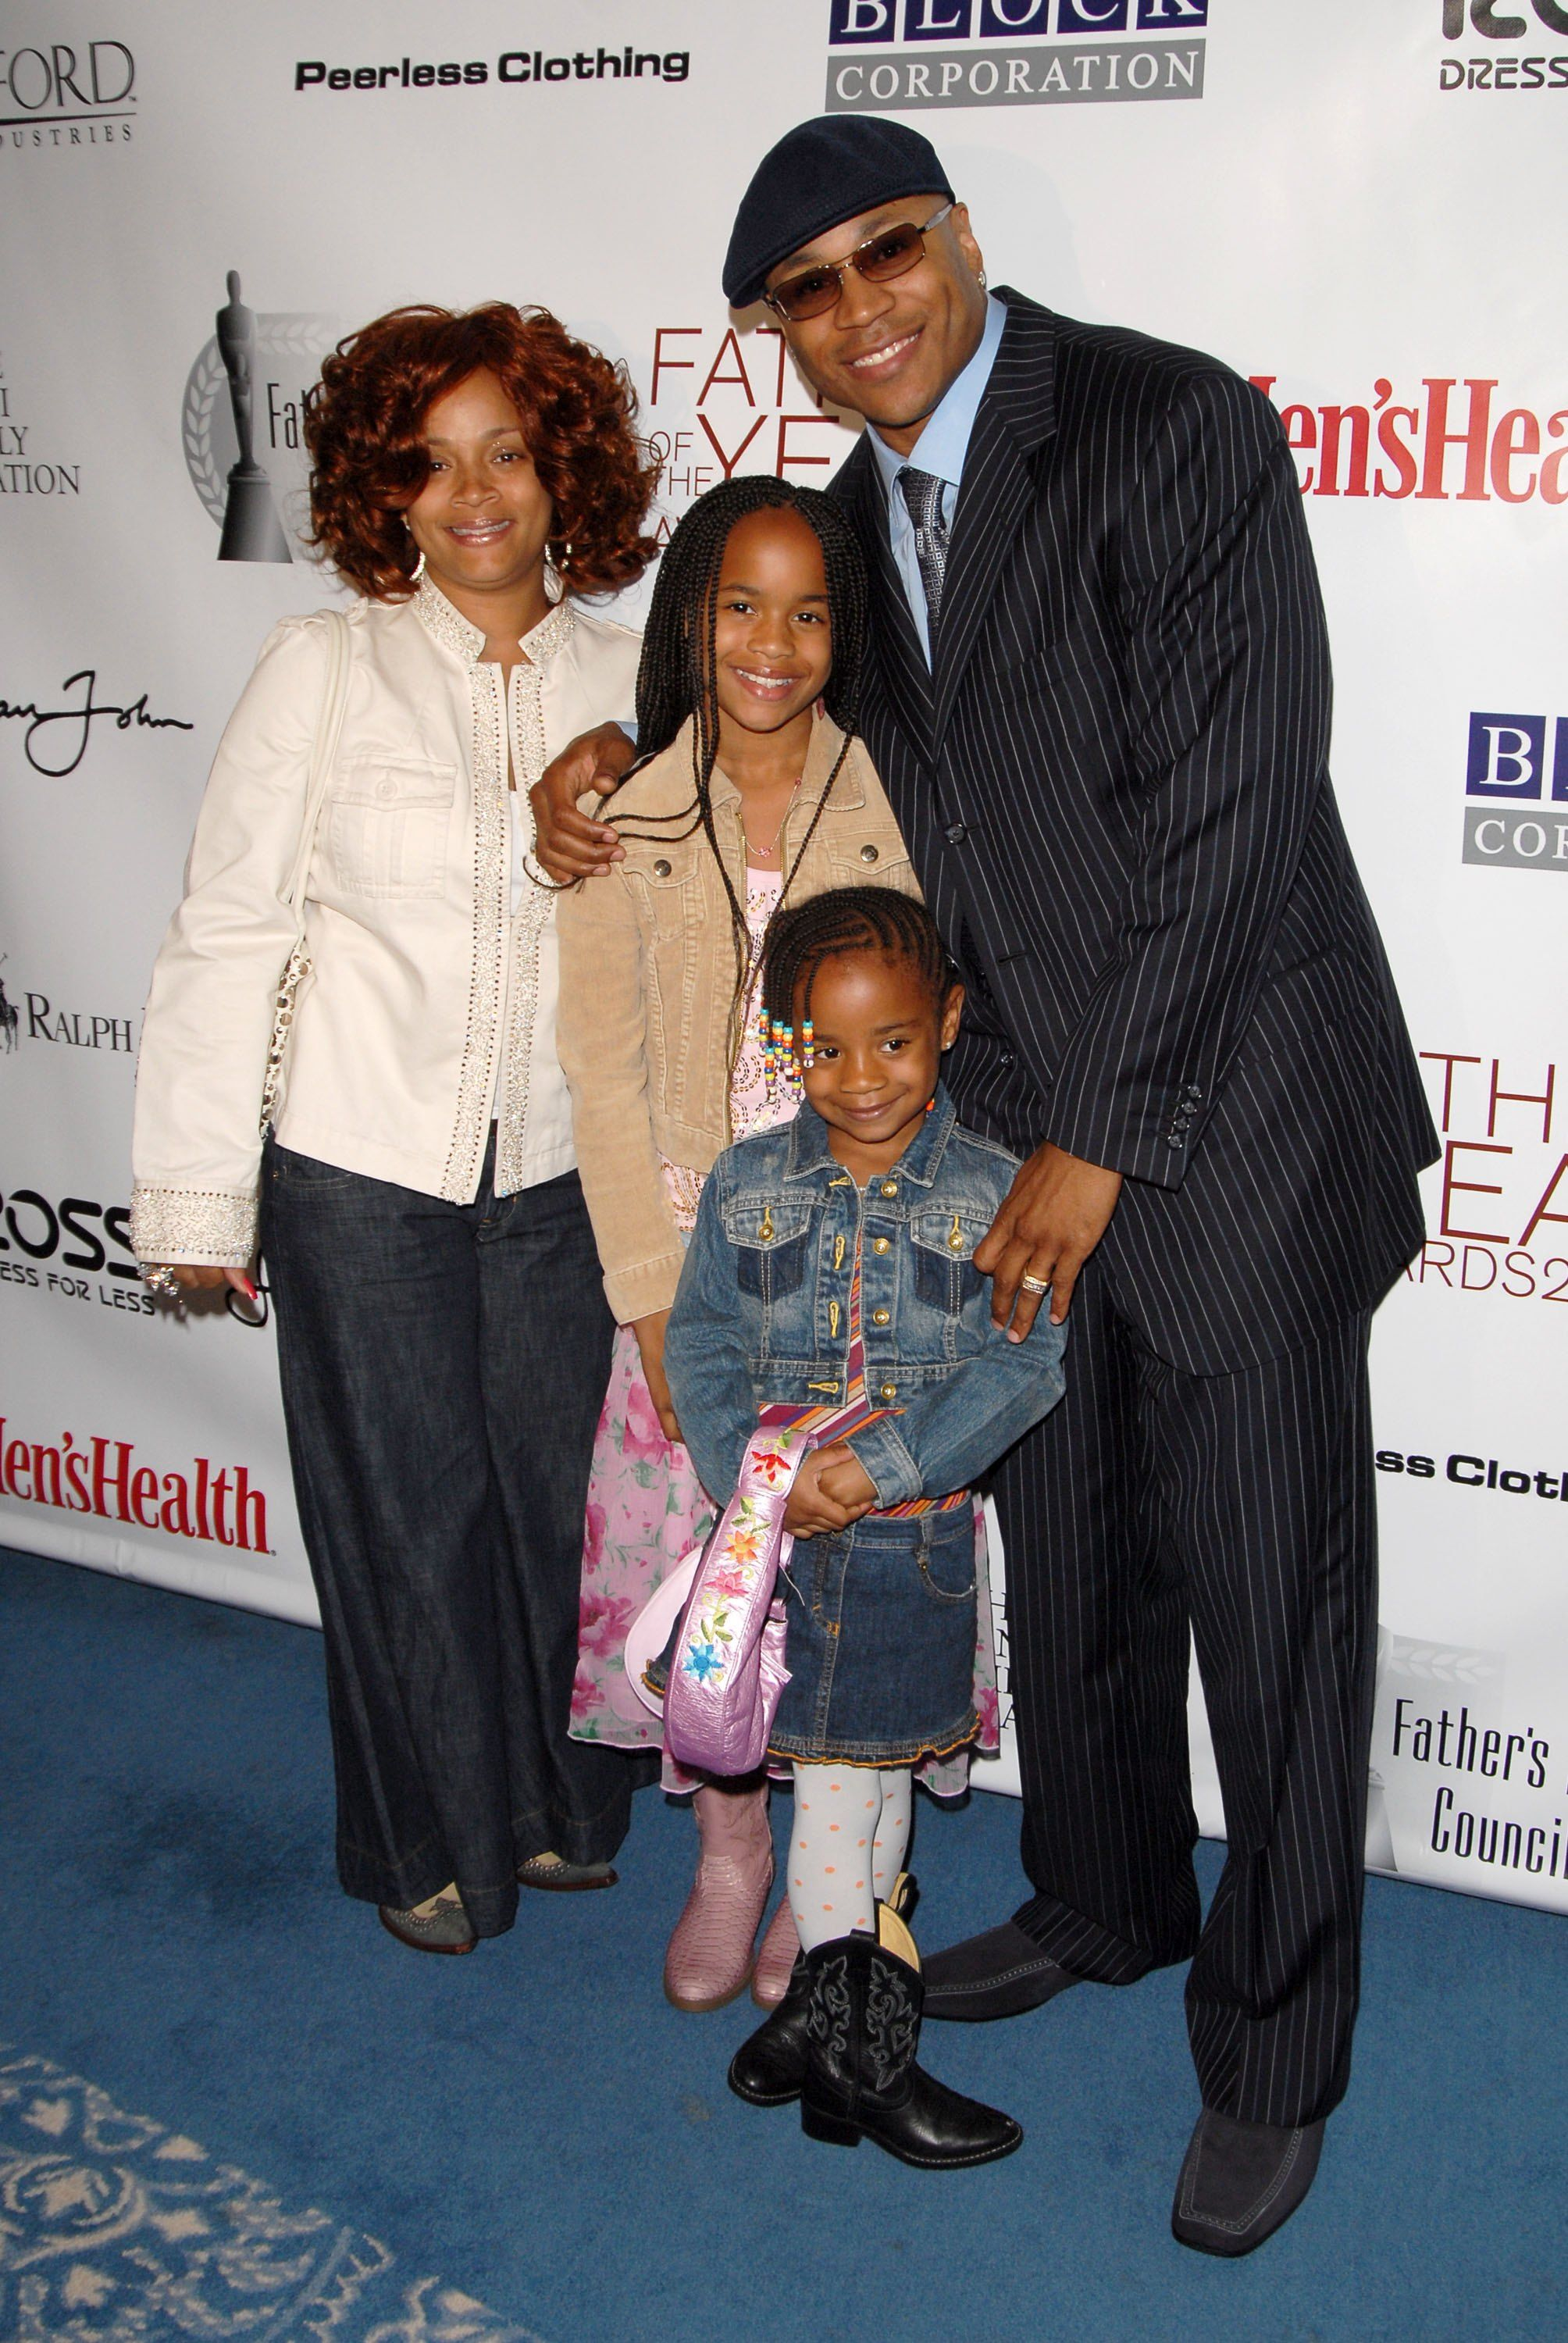 Rapper LL Cool J, Simone Smith, and their children Samaria Smith and Nina Smith at the 65th Annual Father of the Year Awards on June 8, 2006 in New York | Source: Getty Images